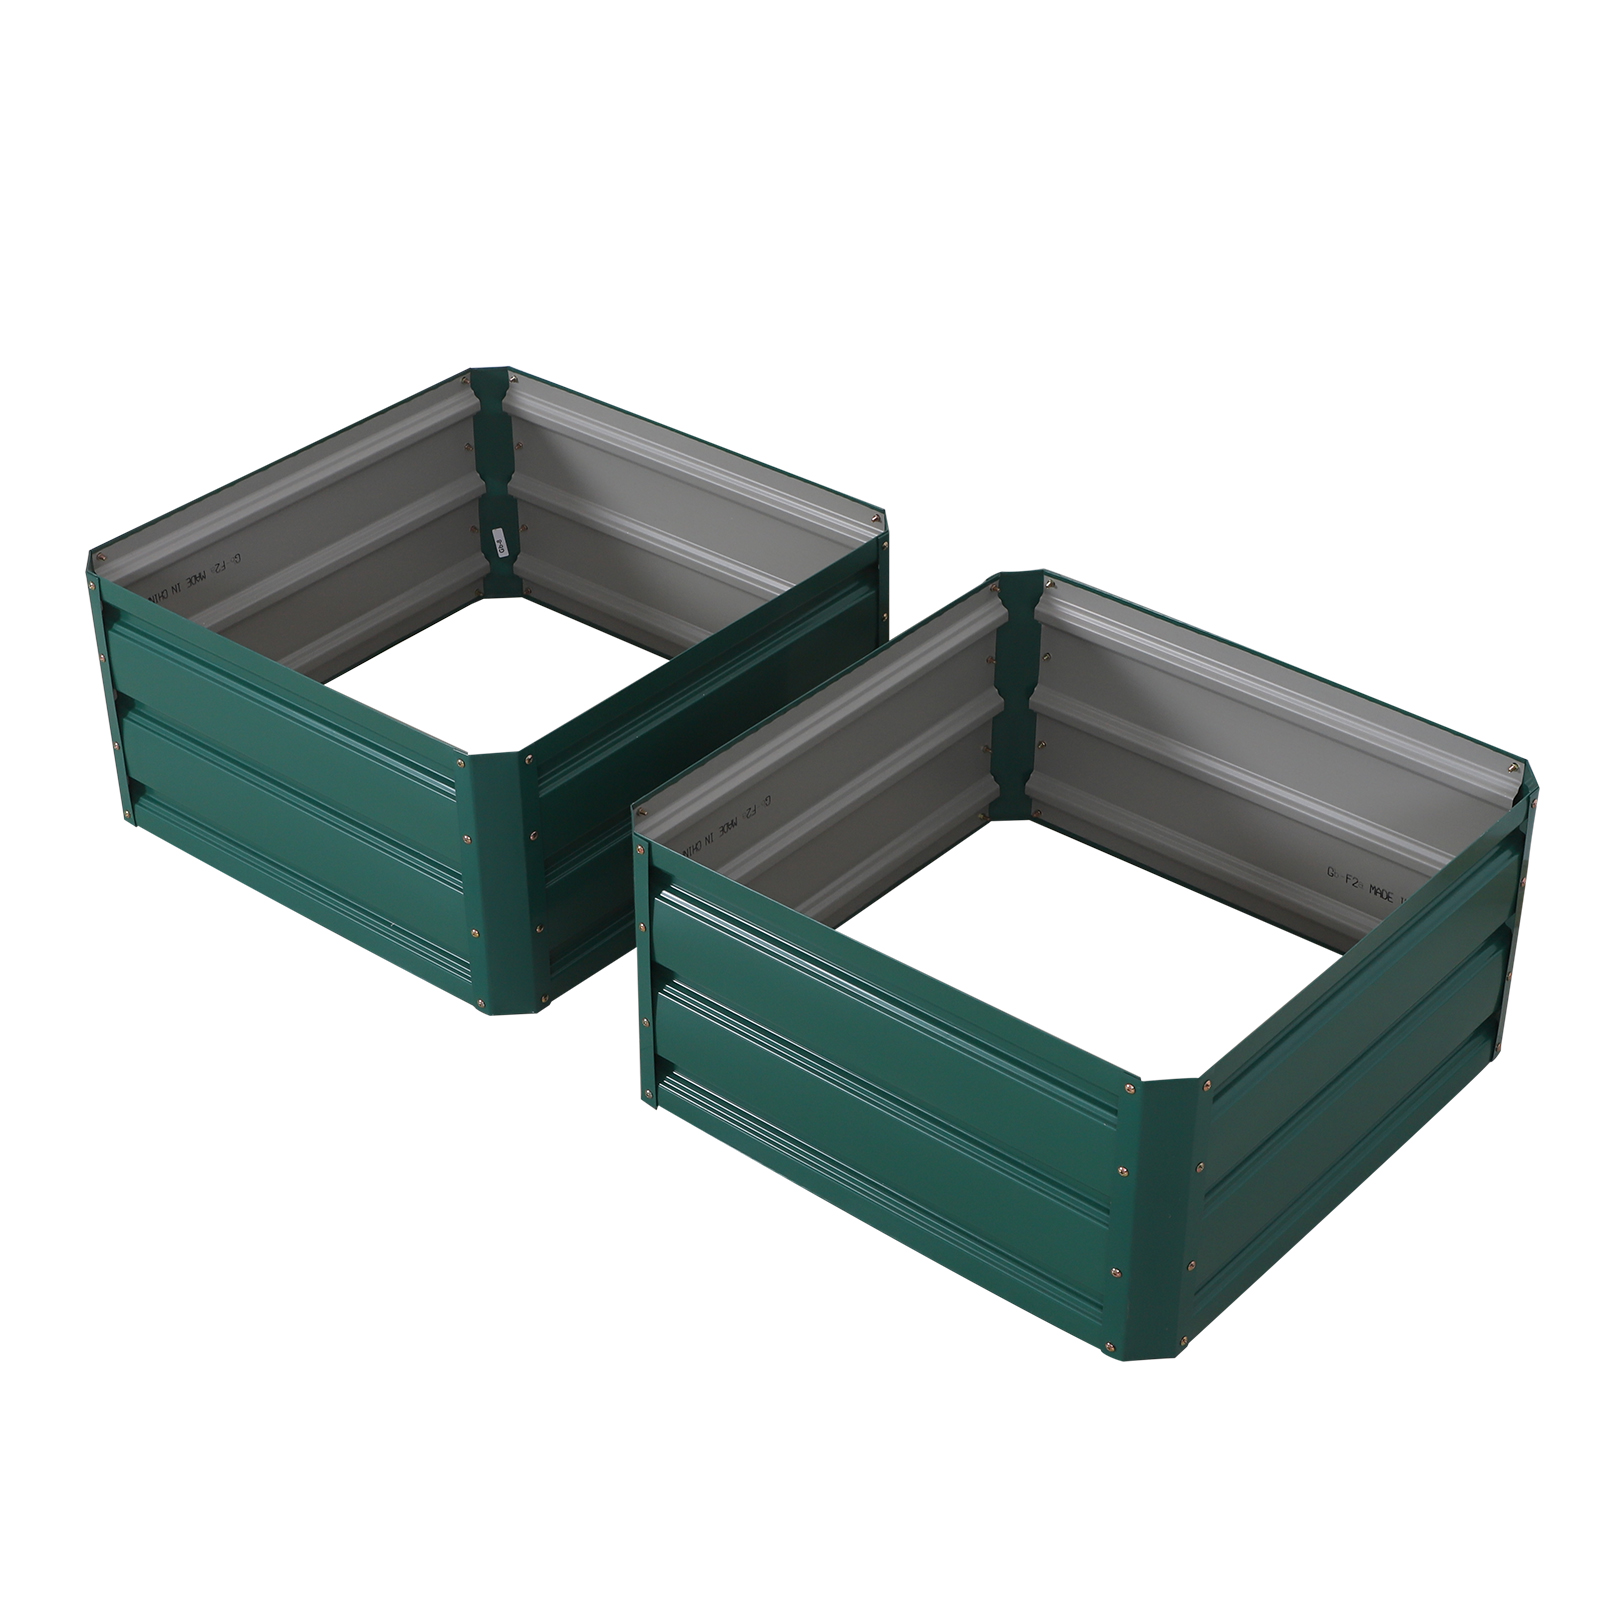 Outdoor 2x2 Ft Metal Raised Garden Bed Patio Frame Planters Box for Vegetables//Flower//